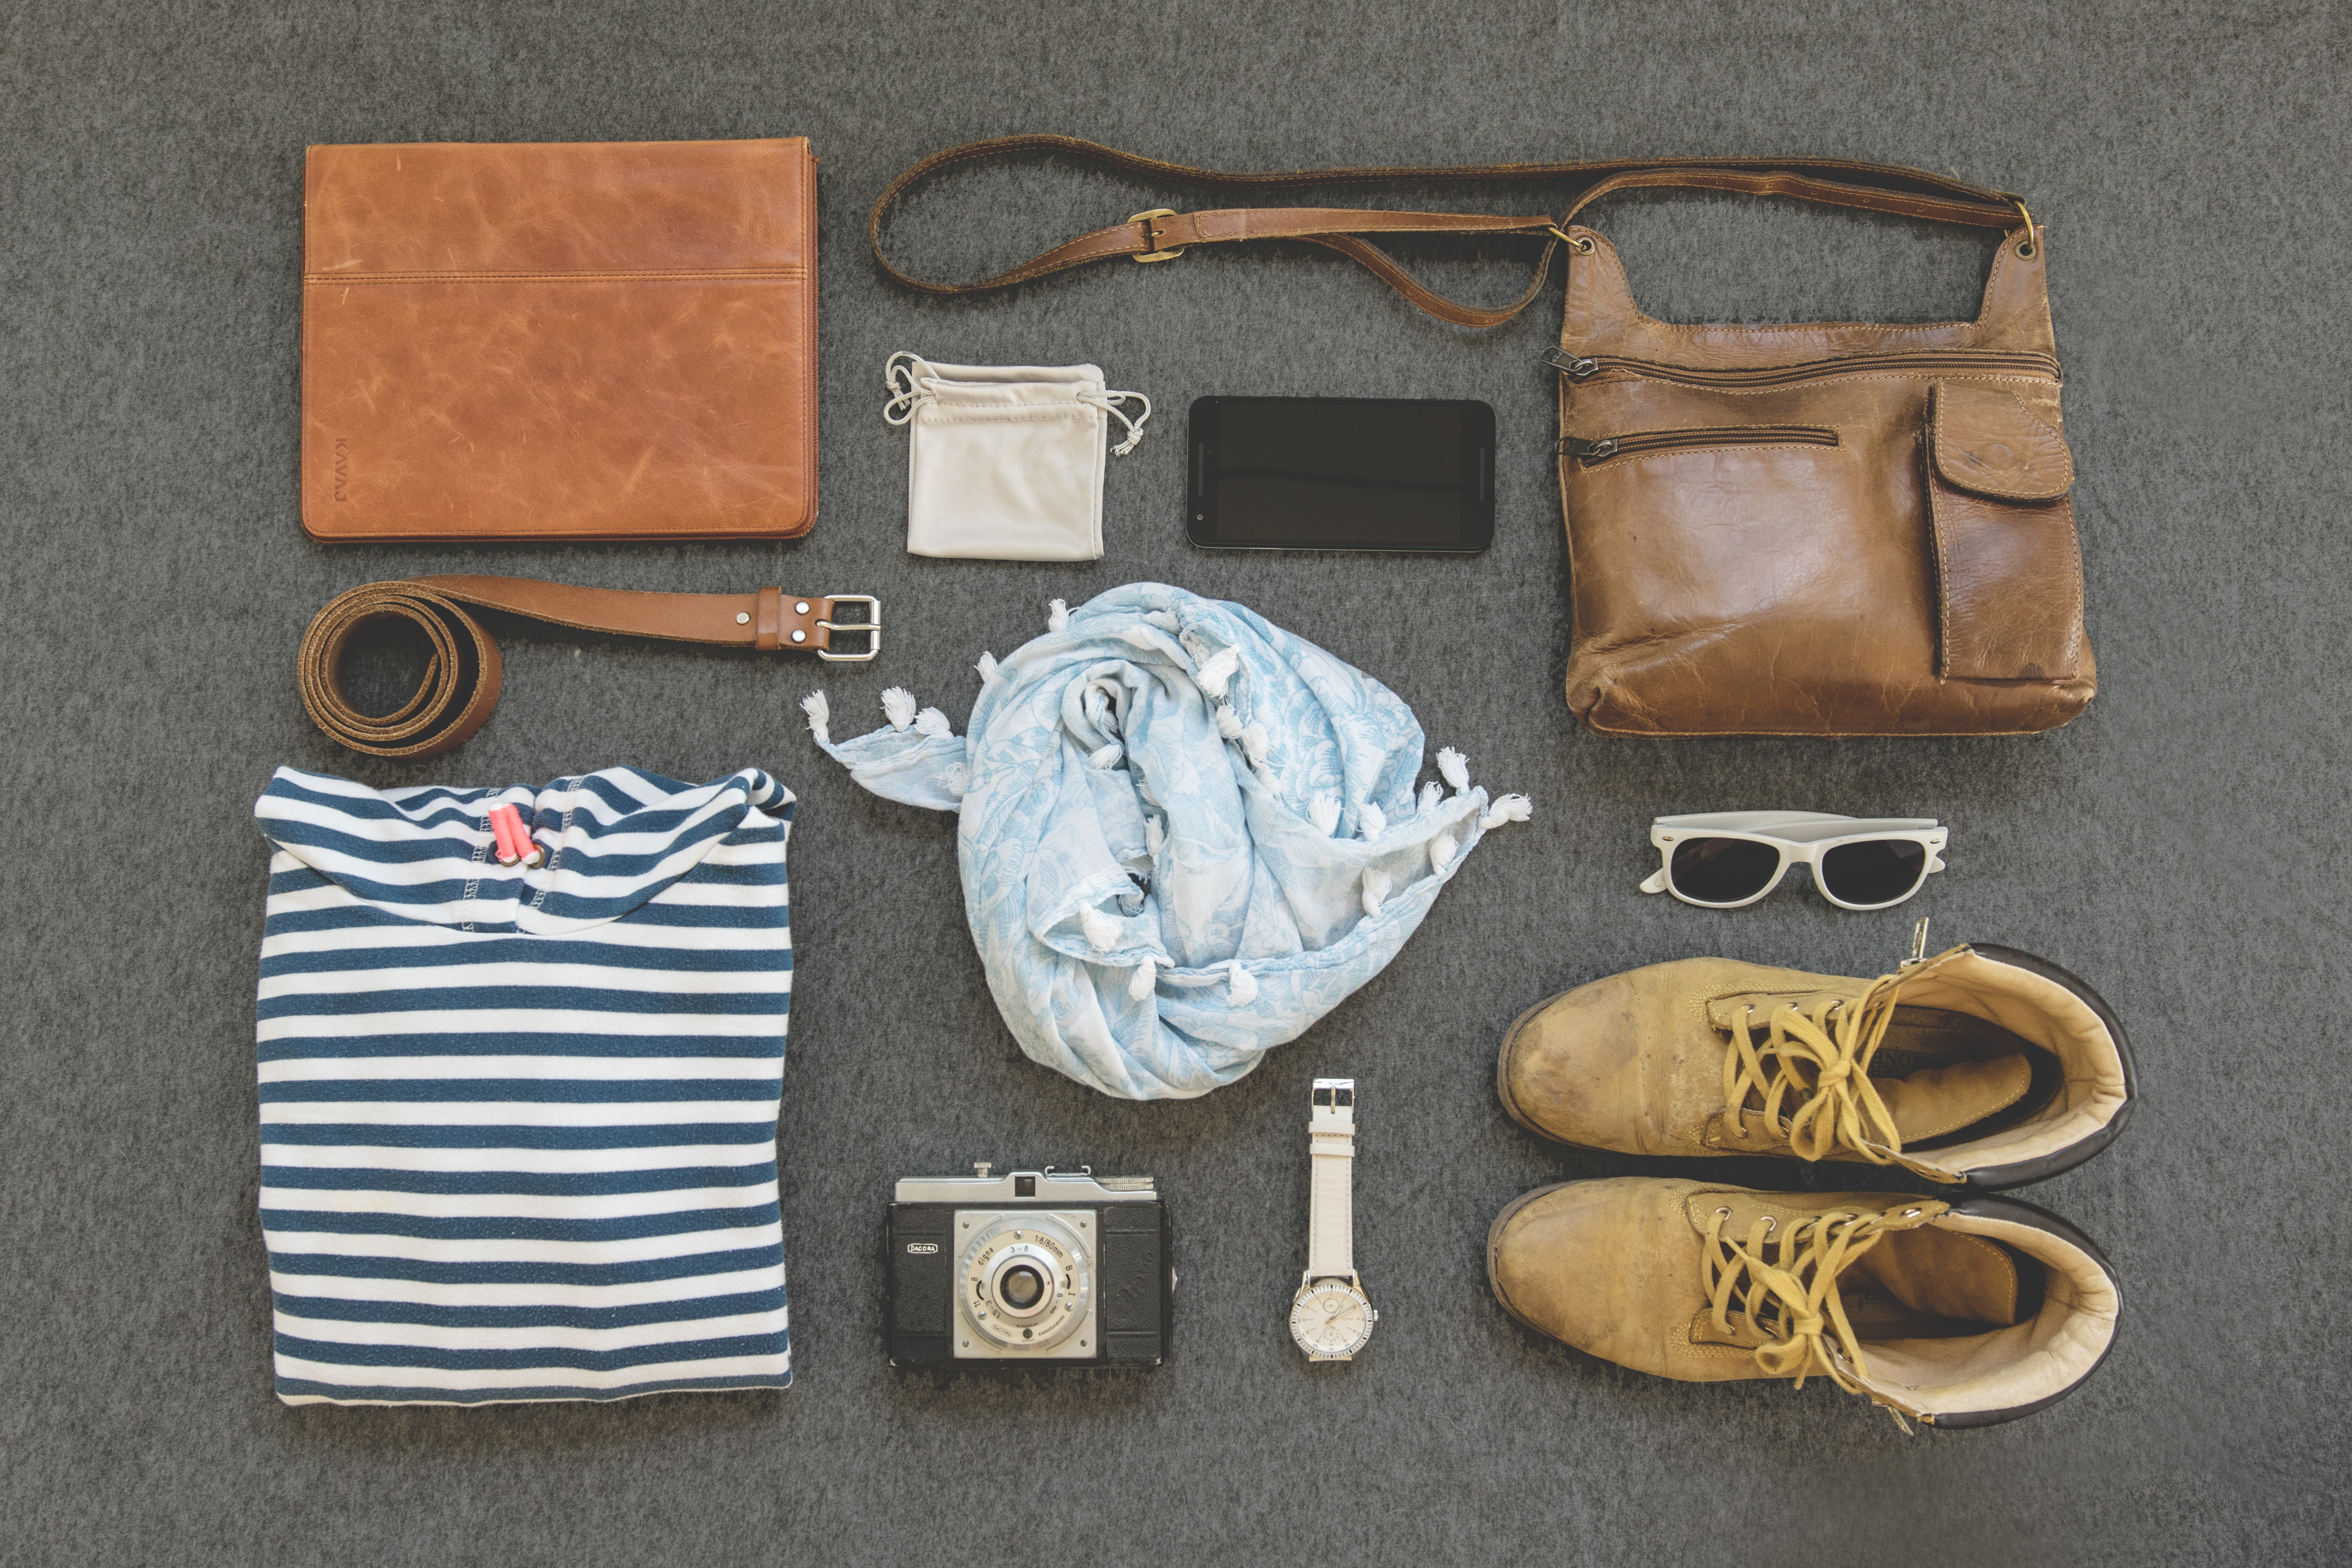 Low Angle View of Shoes, Accessories, Flatlay, Wear, Sunglasses, HQ Photo